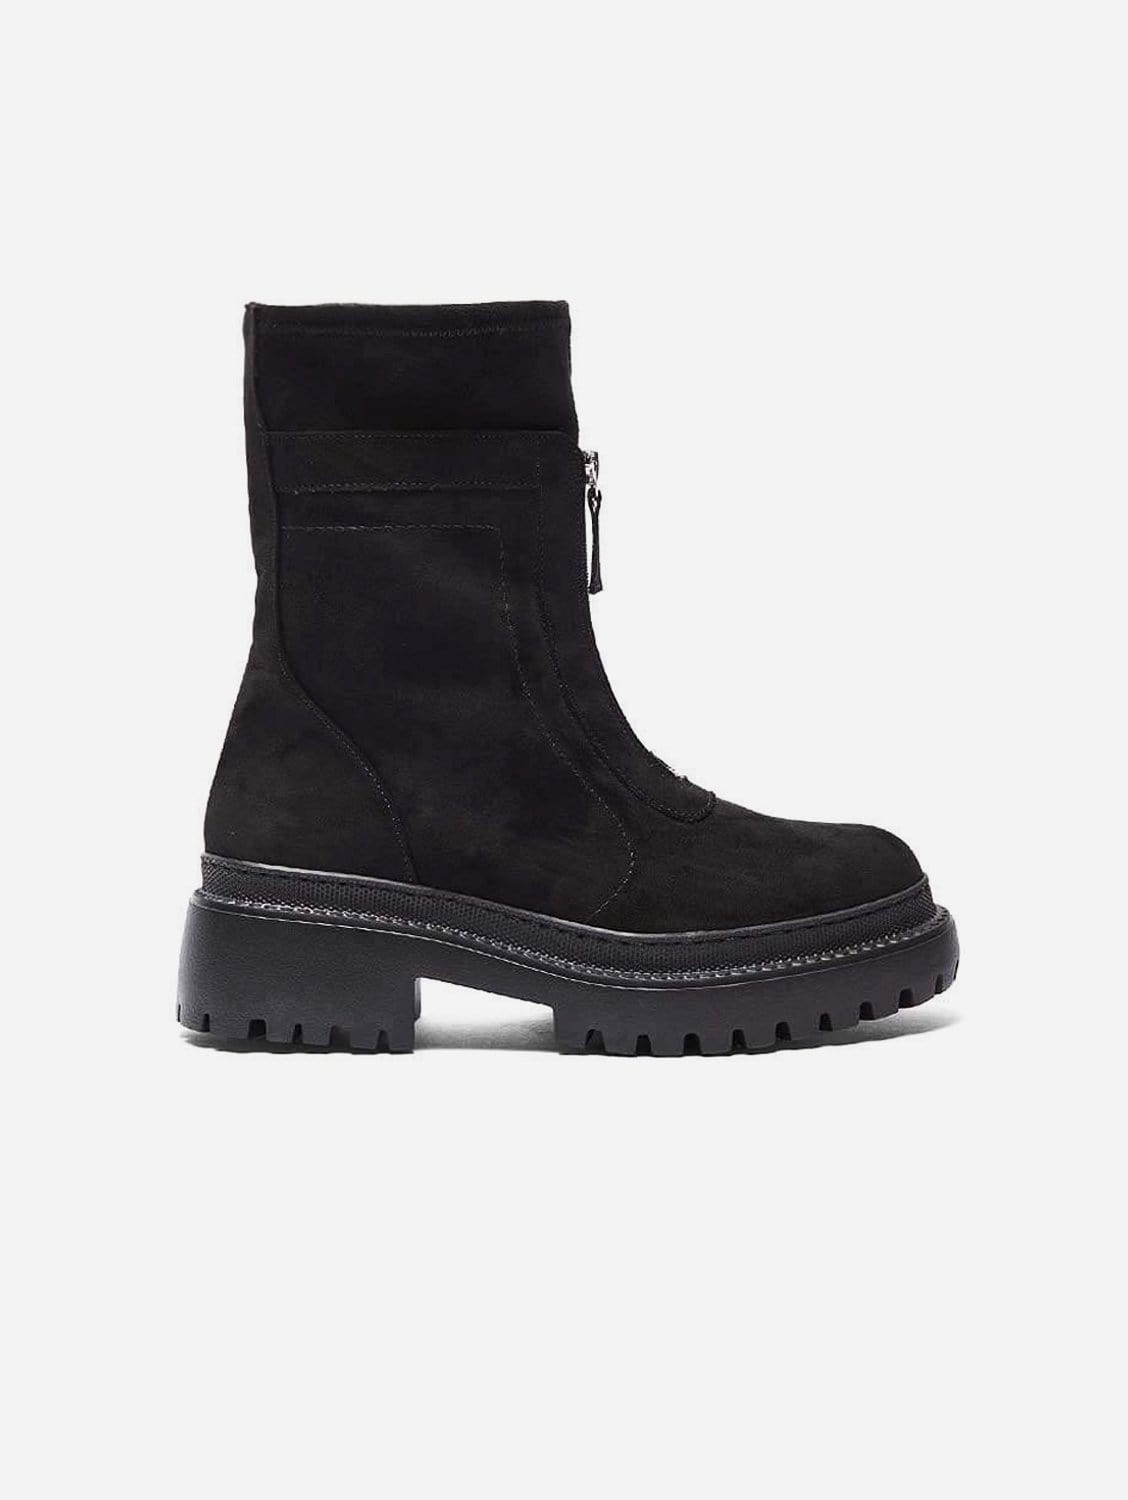 Lidia Recycled Polyester Vegan Suede Winter Boots   Black